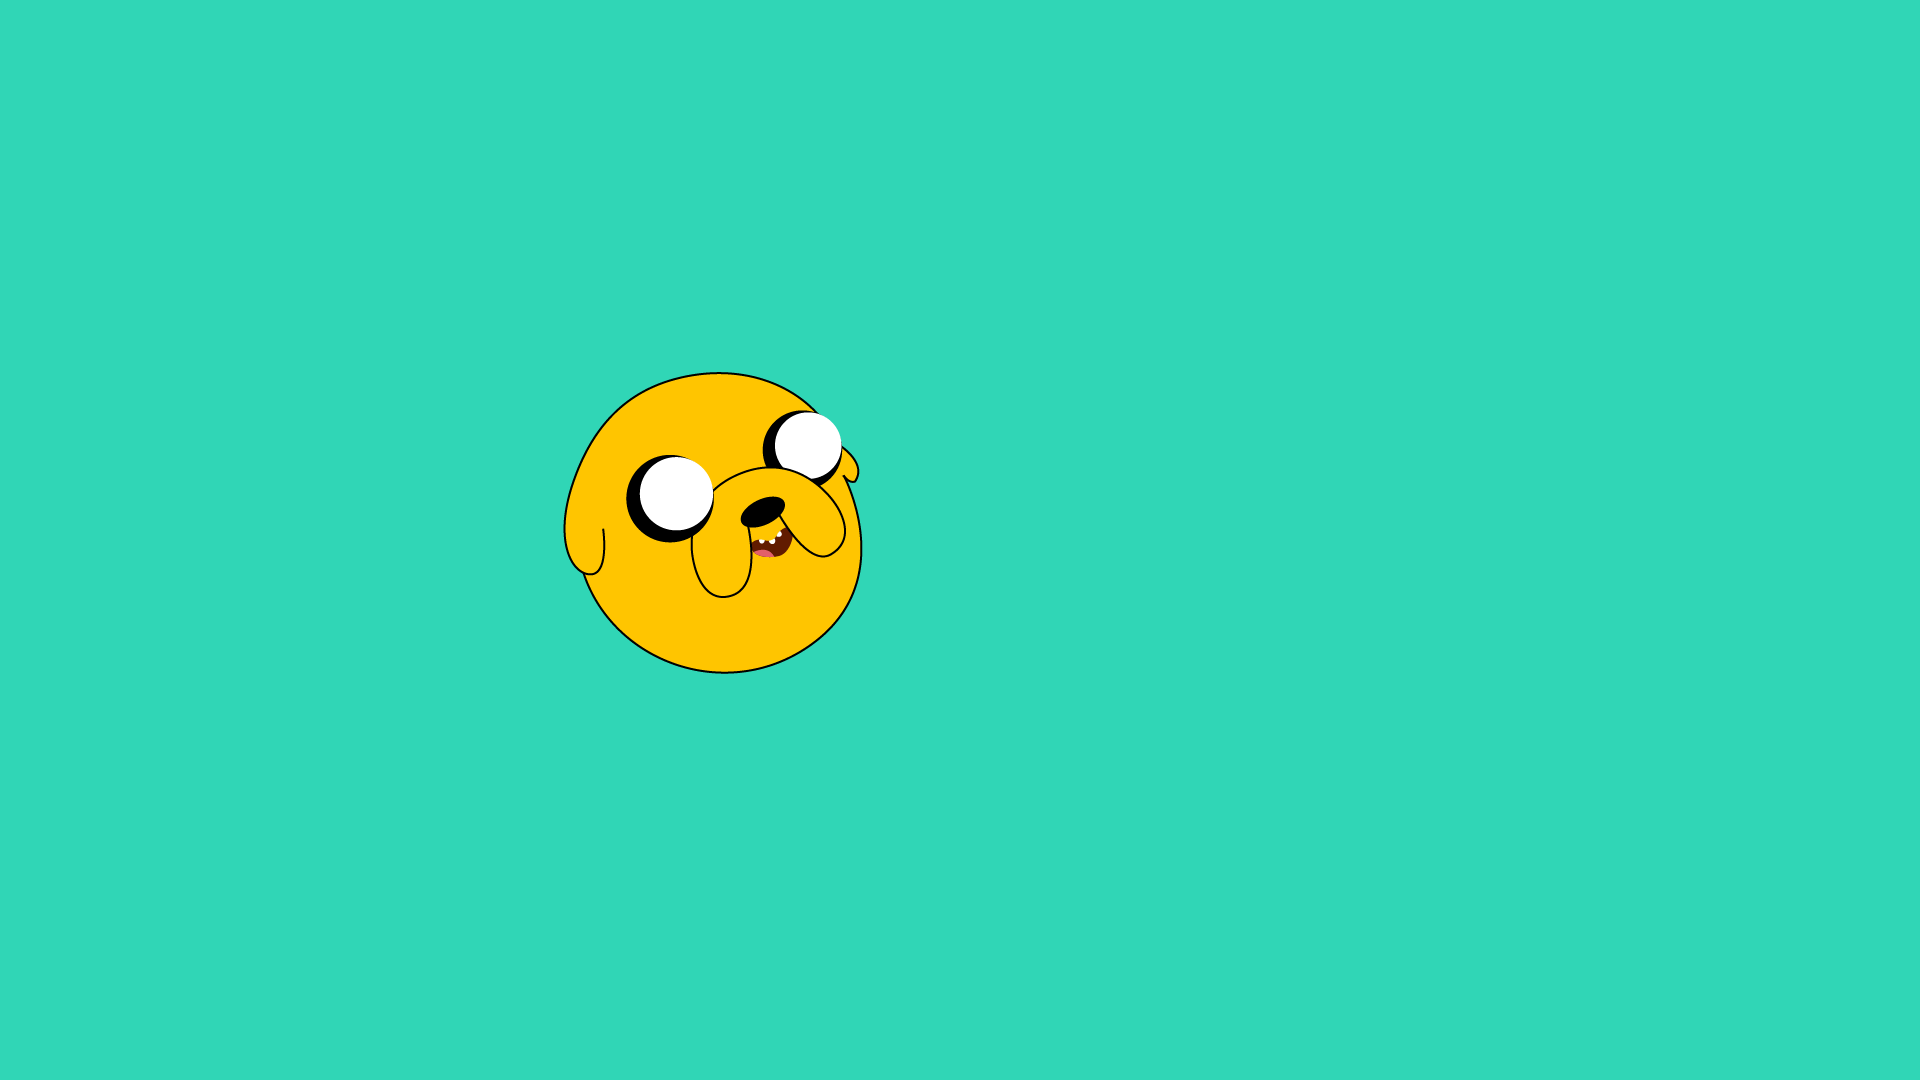 jake adventure time - wallpaper, high definition, high quality